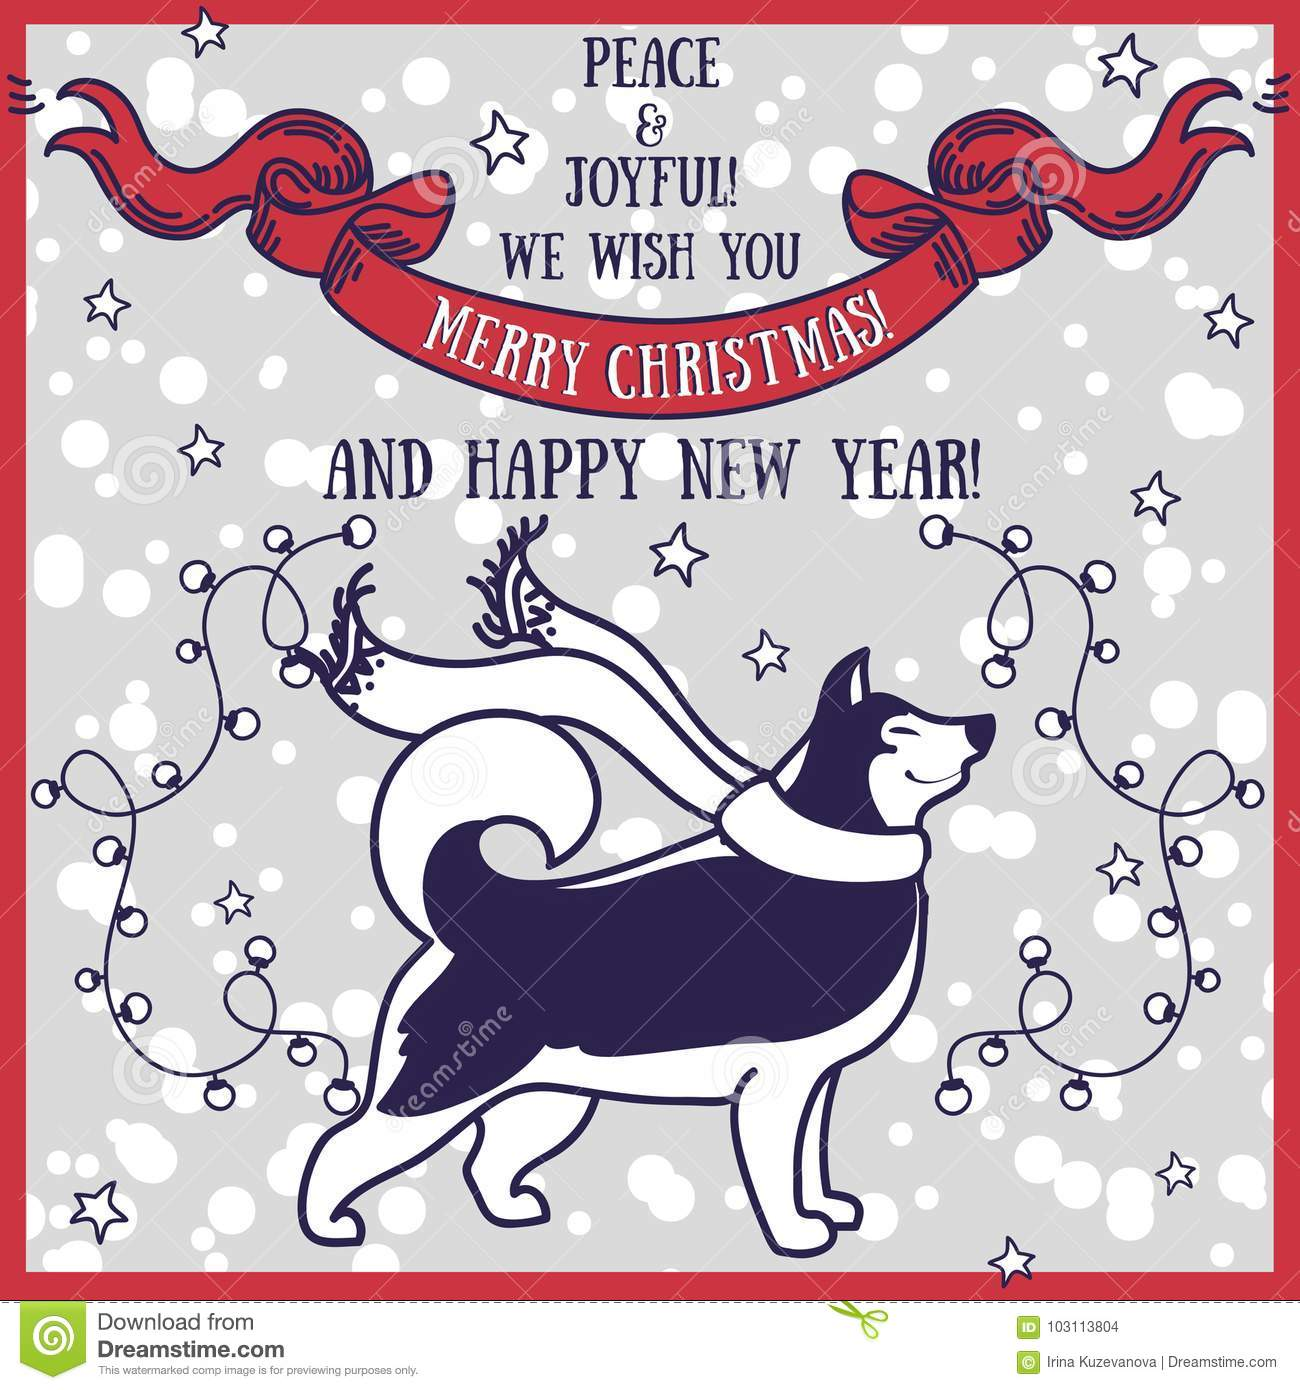 Greeting Card For Christmas And Happy New Year With Cute ...